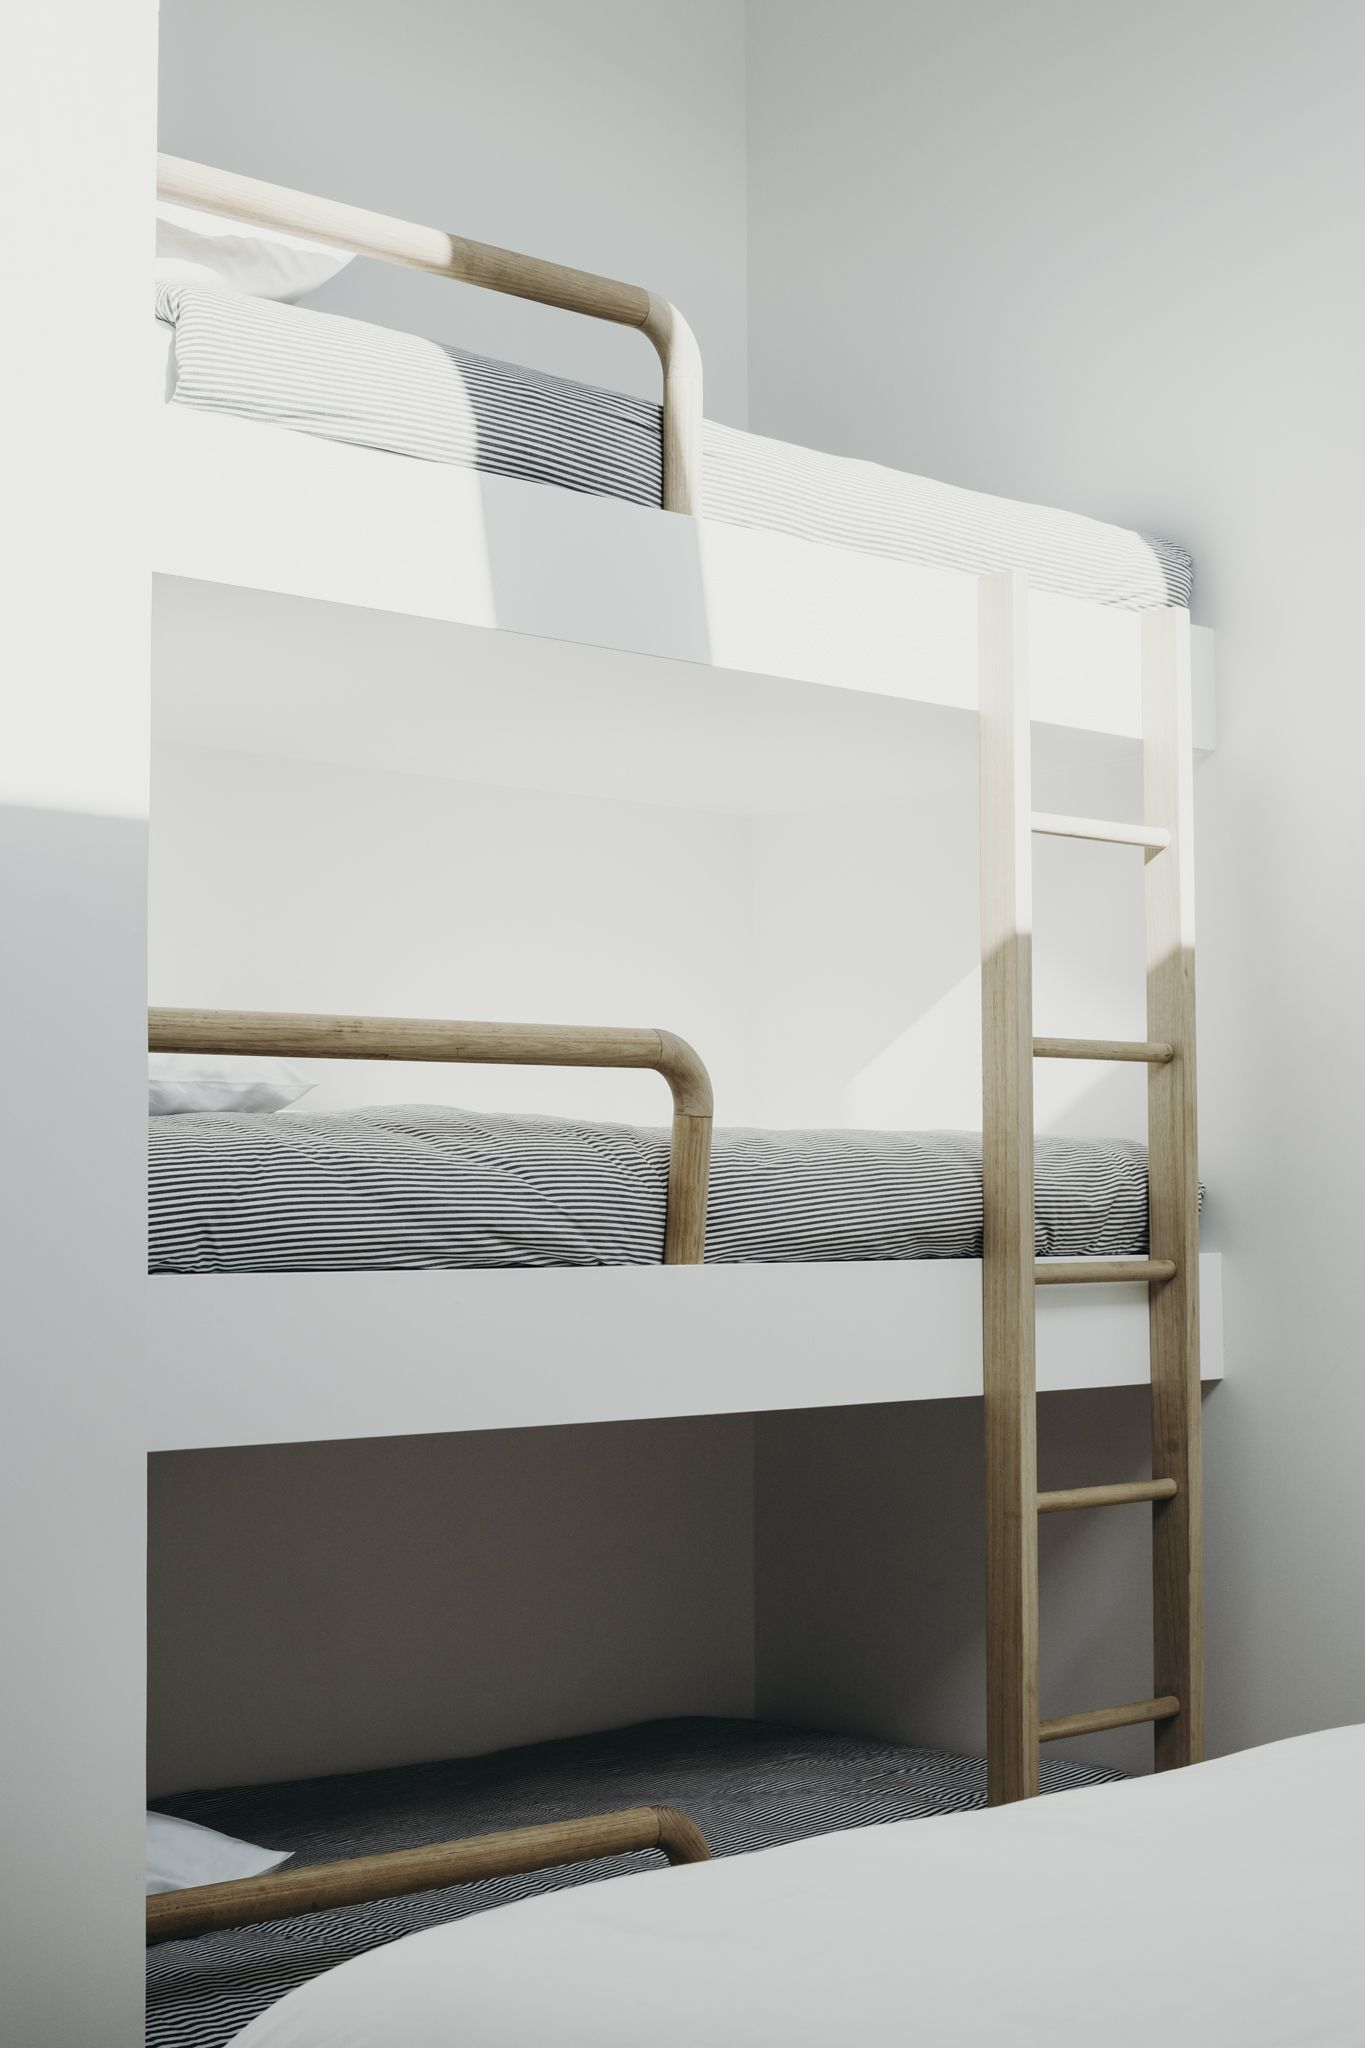 Pin by Beat on Minimalist interiors Bunk beds, Modern